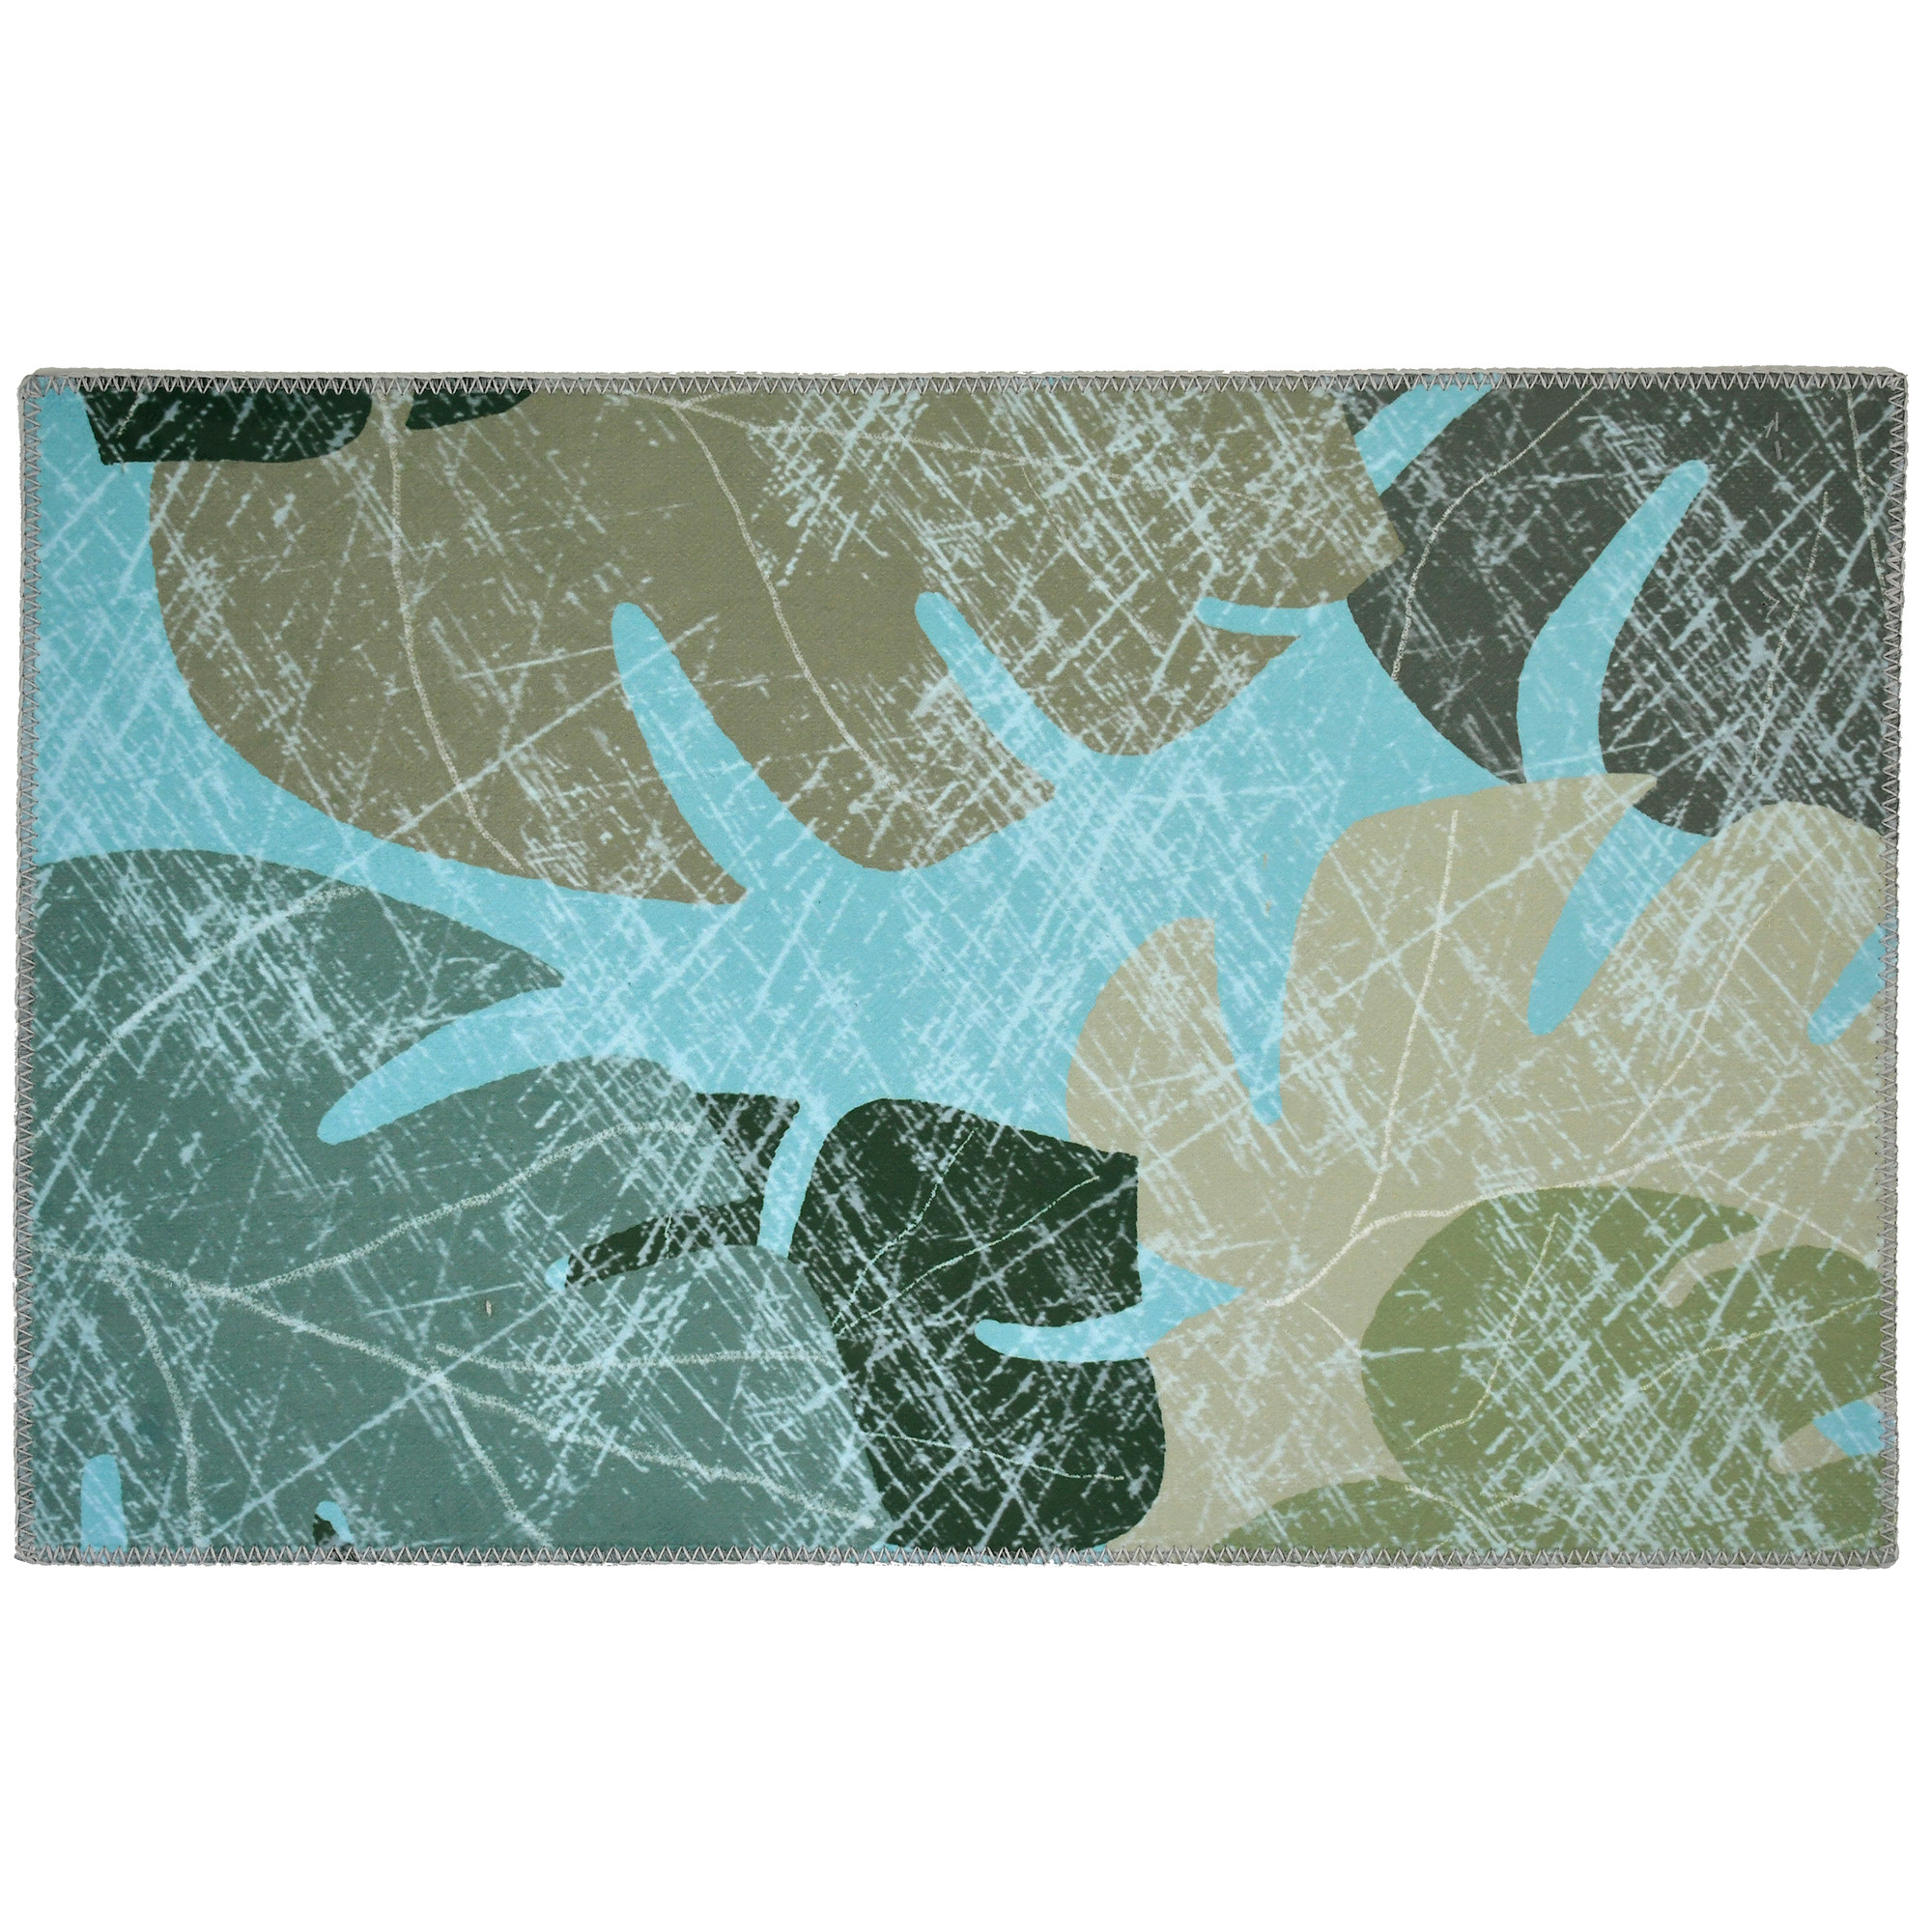 Faded tropical leaves are captured by designer Jade Reynolds on this Homefires by Jellybean® poly-suede floor cloth. The color and details are captured through printing on polyester providing a machine washable floor cloth. With suede like texture, this poly-suede floor cloth is available in four sizes.